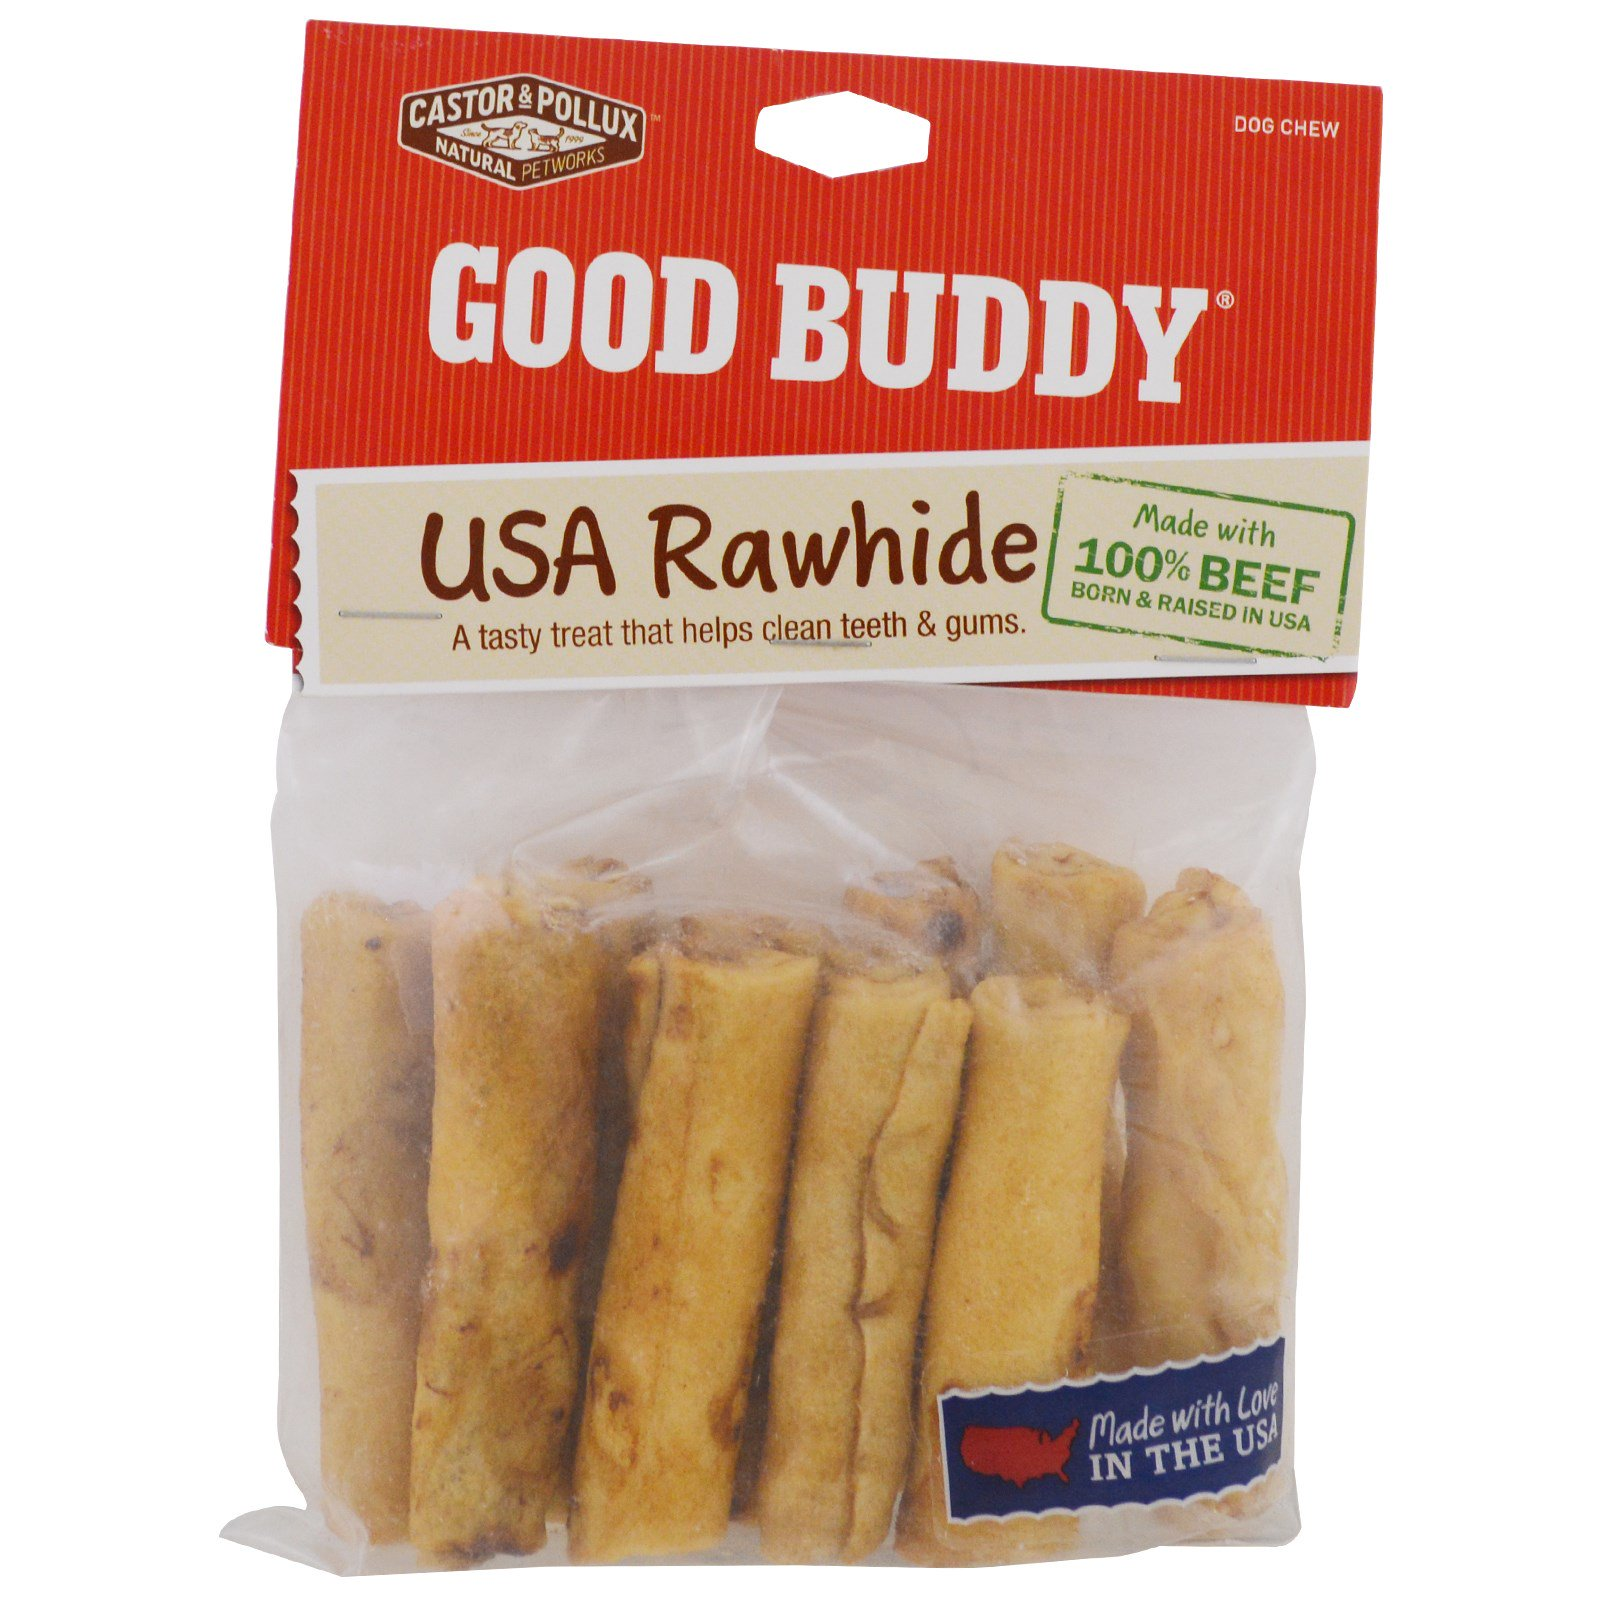 Castor & Pollux, Good Buddy, USA Rawhide, Chicken Flavored Roll, 10 Rolls, 2 in(pack of 2)